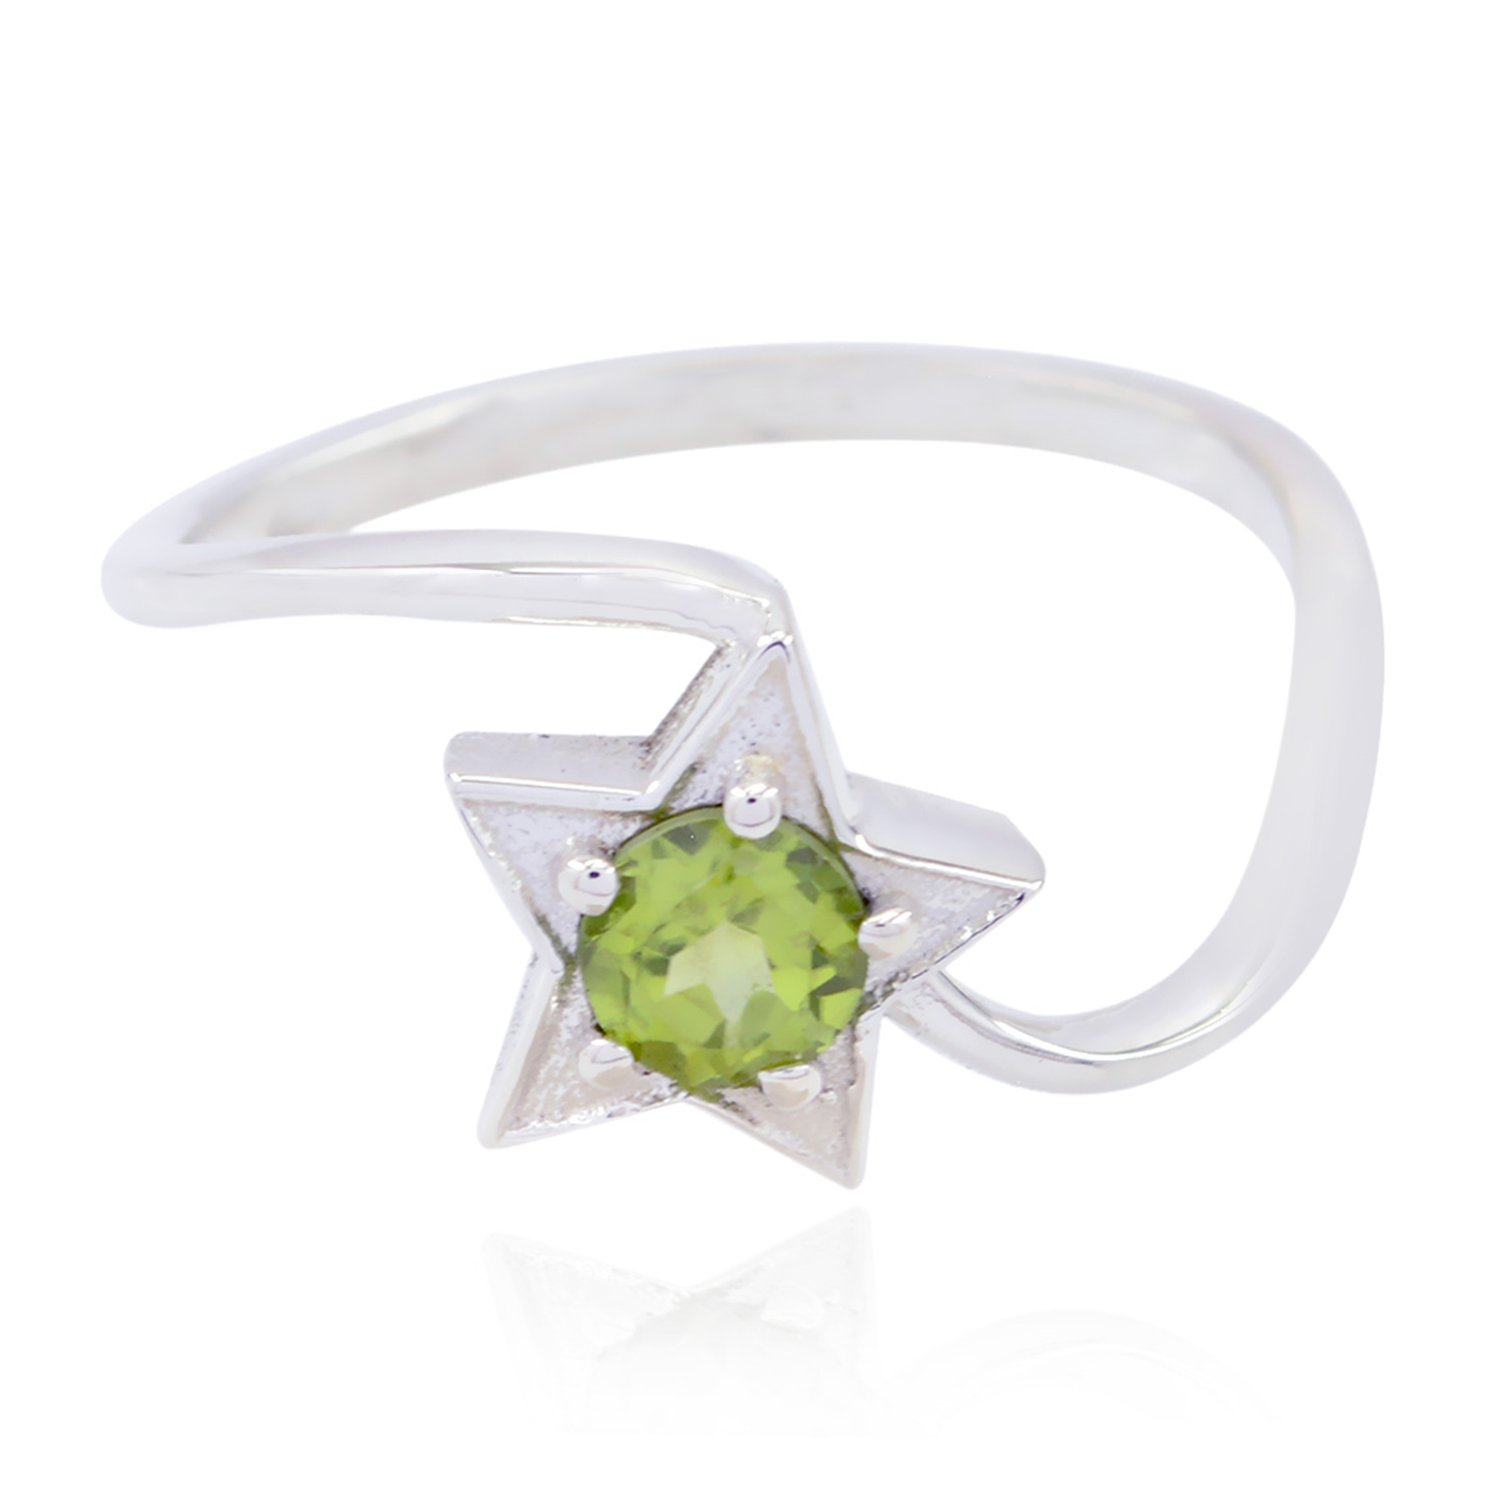 Natural Gemstone Round Faceted Peridot Ring 925 Sterling Silver Green Peridot Natural Gemstone Ring Great Jewelry Most Item Gift for Valentines Day top Ring